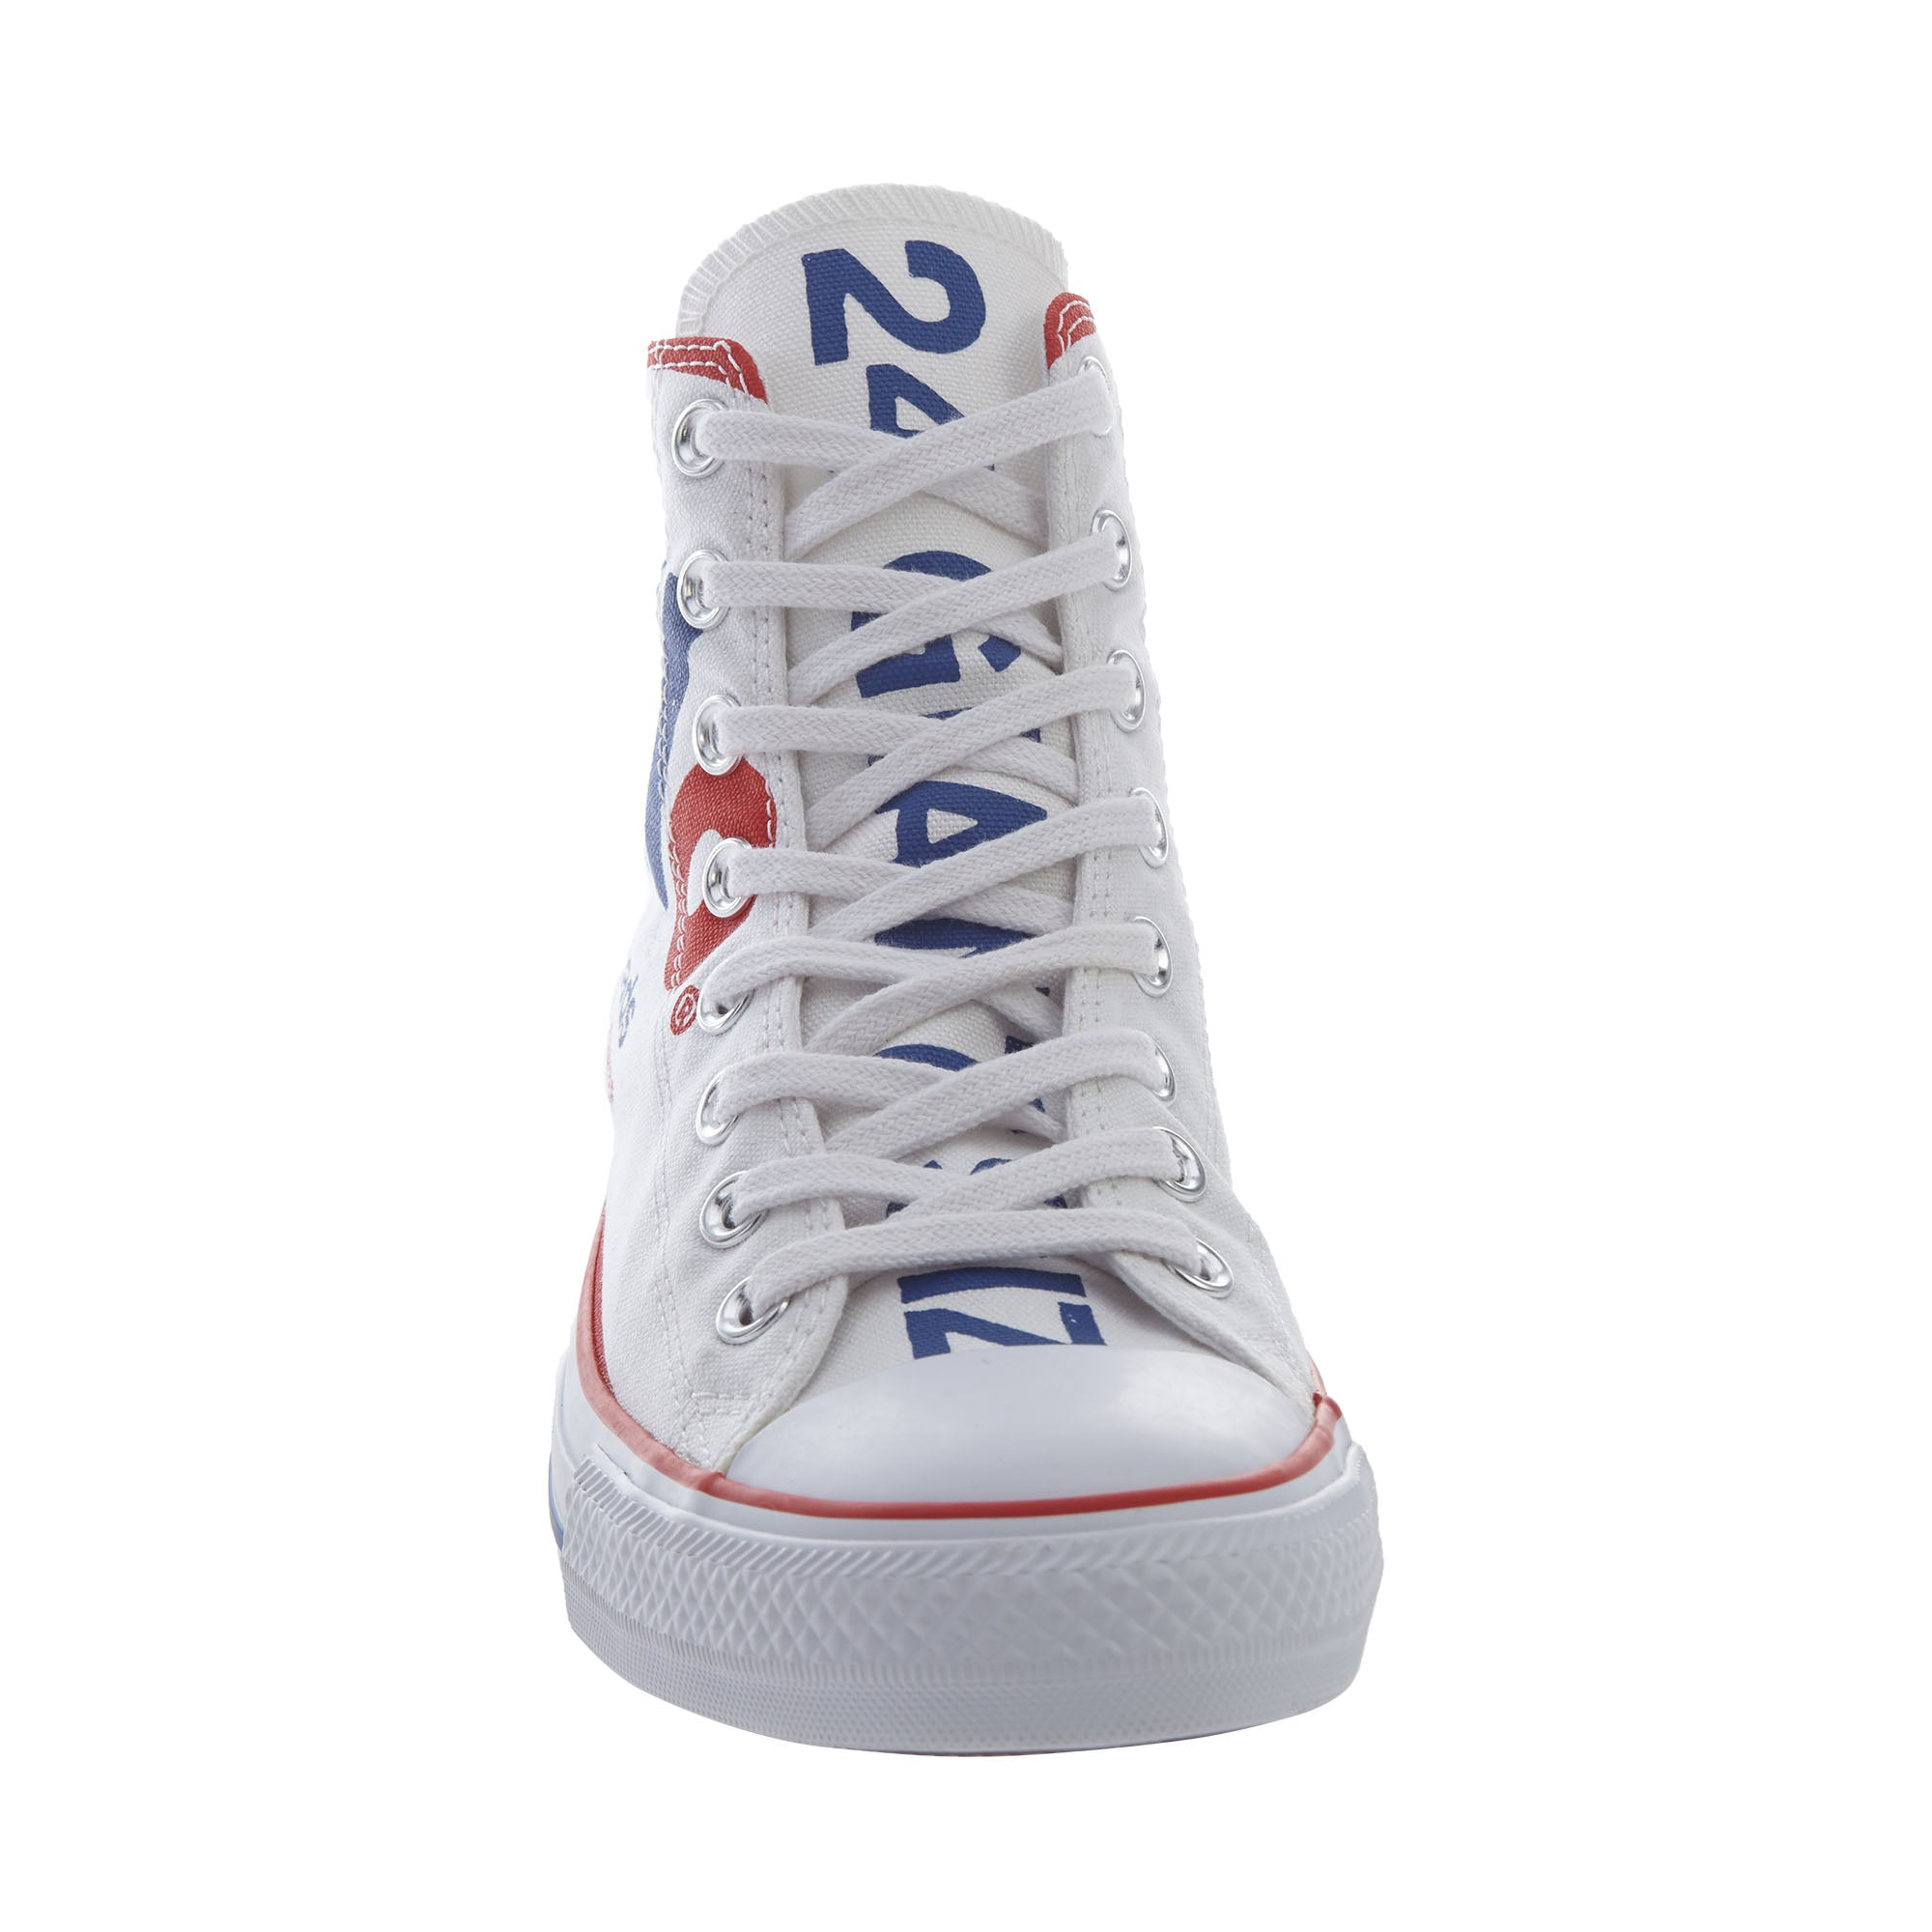 1a08e072ed55 Converse Chuck Tailor All Star Hi Unisex Style   153838f-WHITE RED BLUE